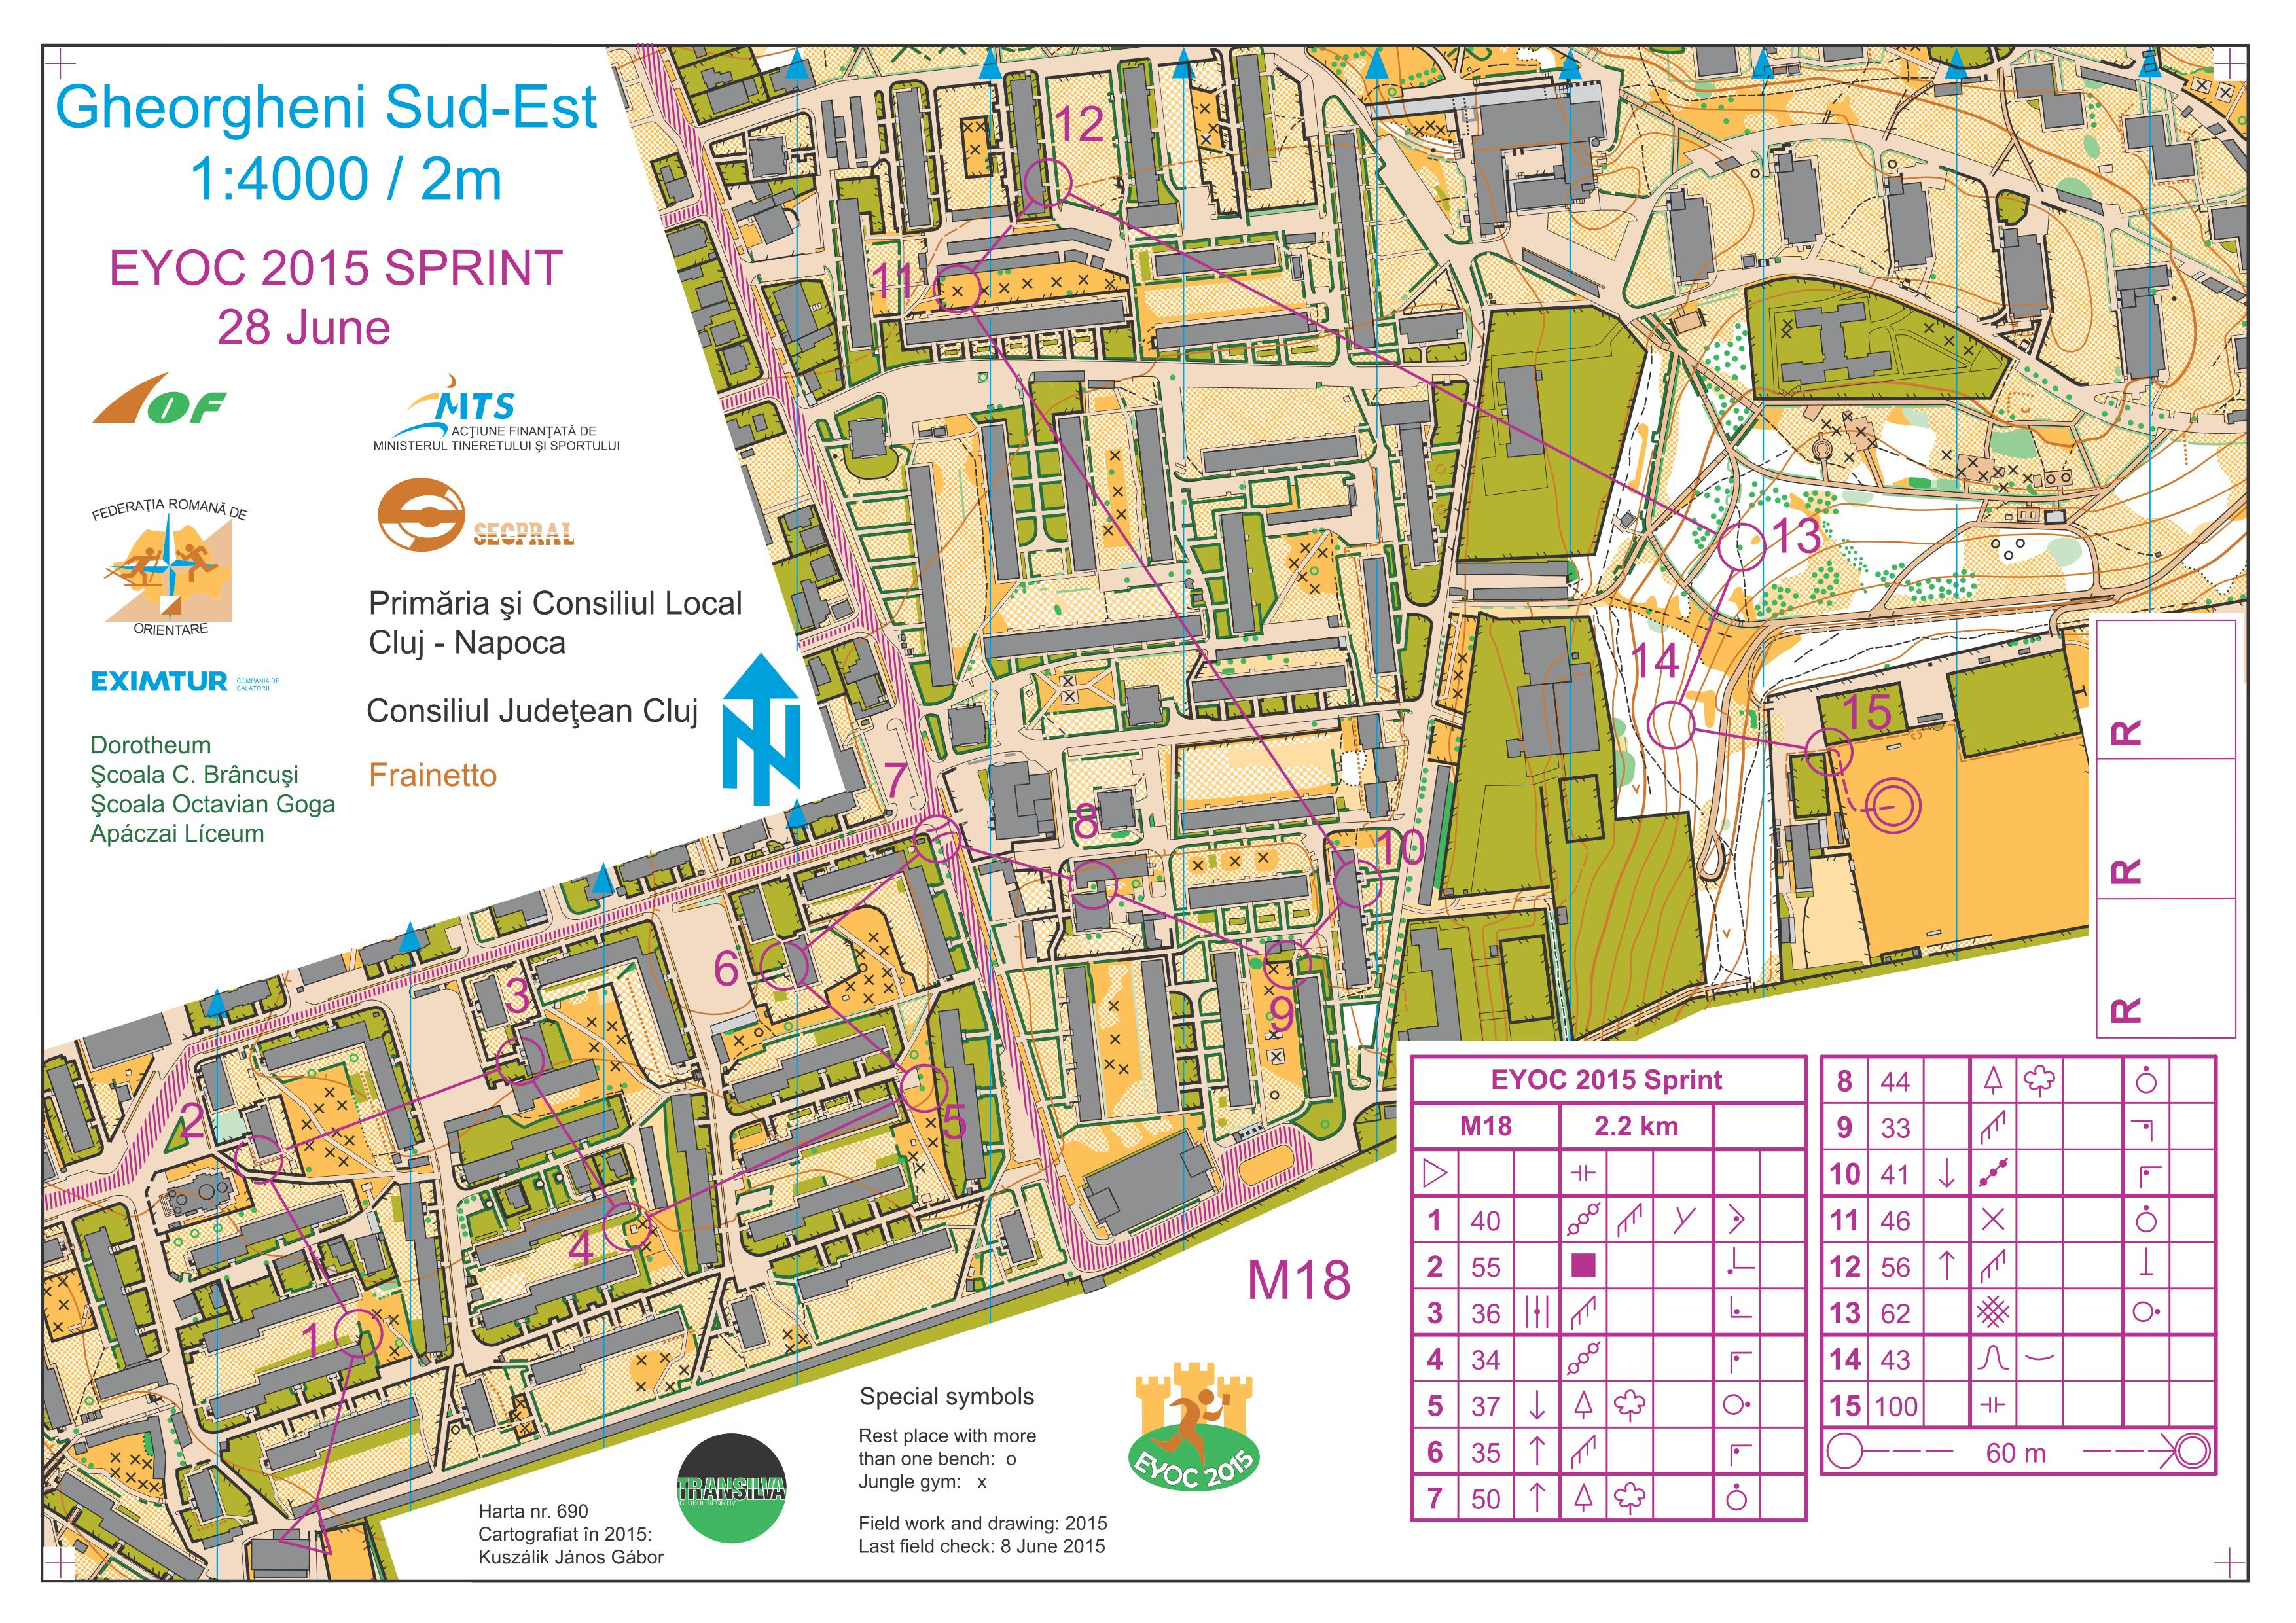 EYOC 2015: Maps and Results | World of O News